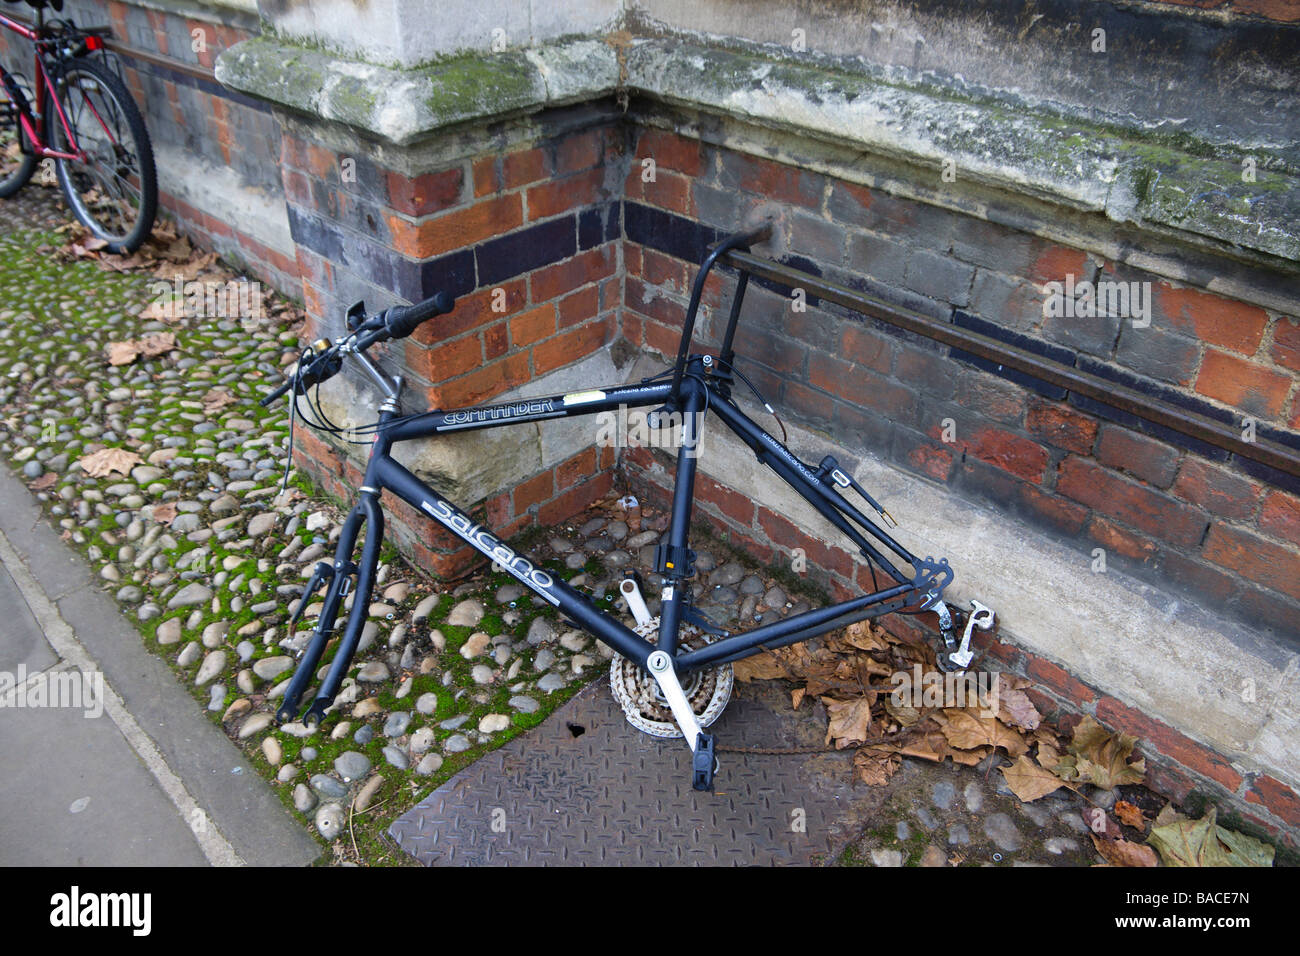 Vandalised bicycle chained to Jesus College railings in Oxford - Stock Image